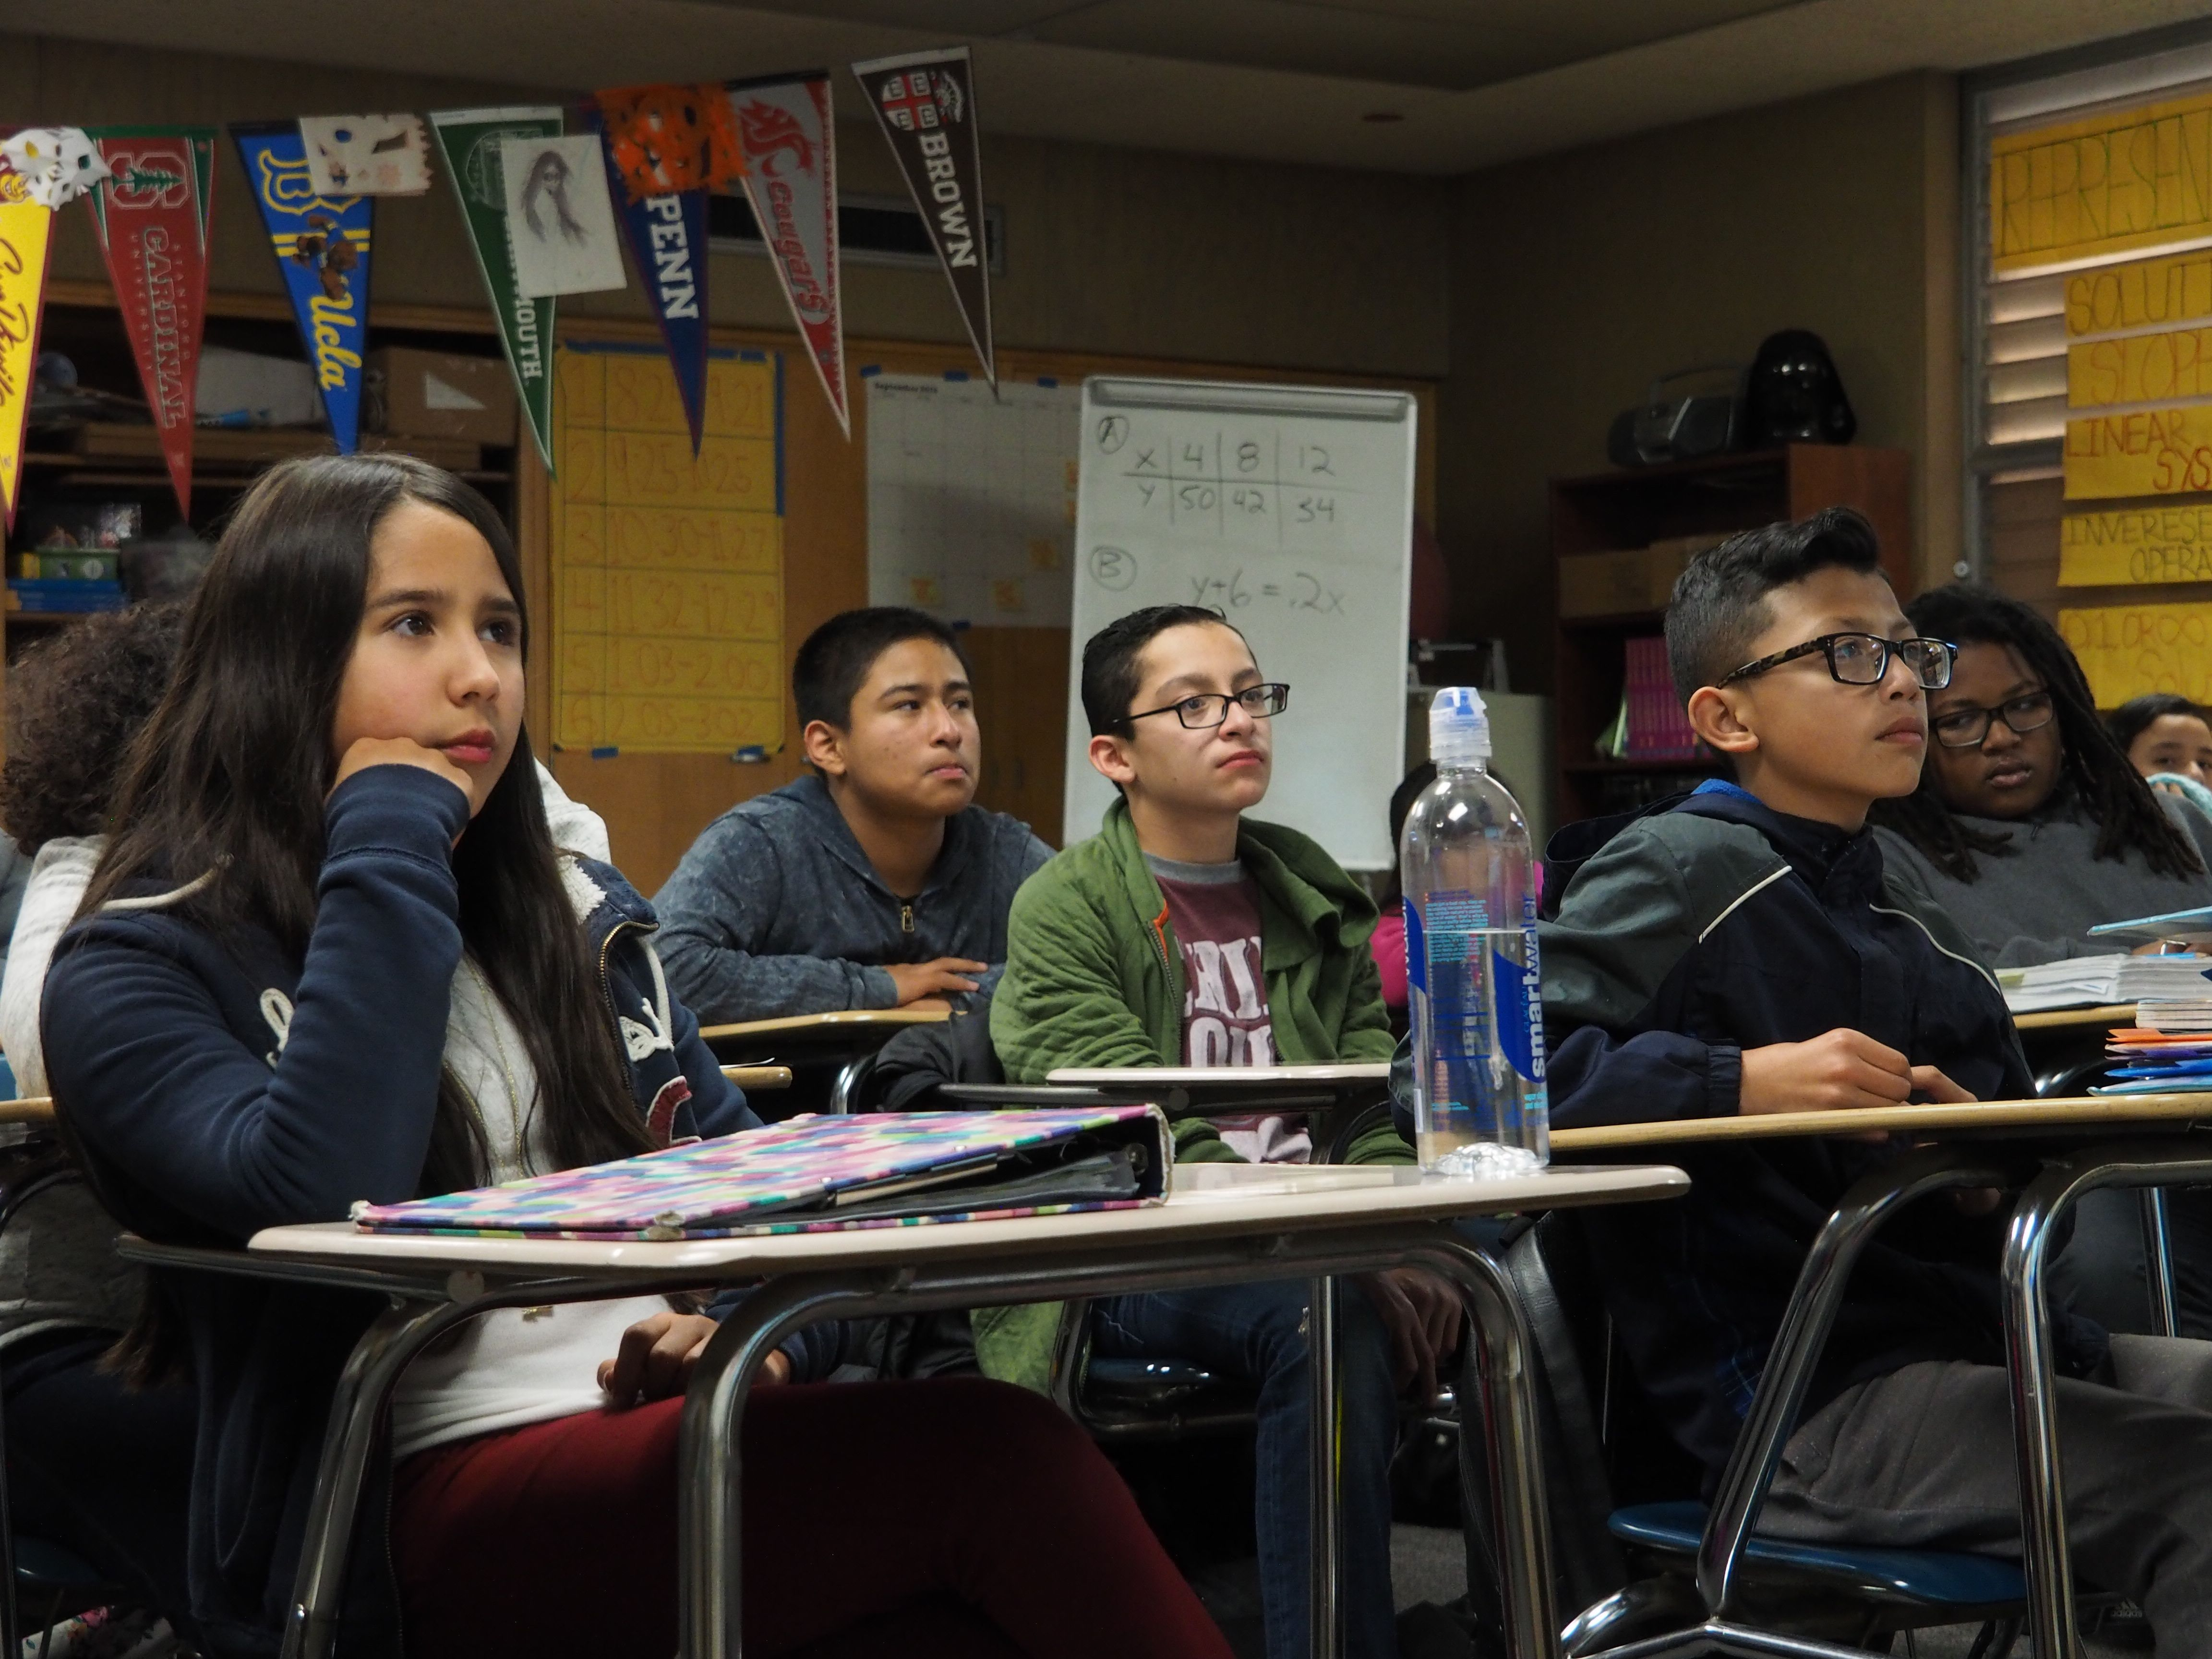 MoreHayward USD students are taking college classes in high school and middle school thanks to a college readiness and concurrent enrollment program there. By offering college credits in high school and middle school,Hayward USD is offsetting the course work of their students once they graduate high school and helping their families financially.